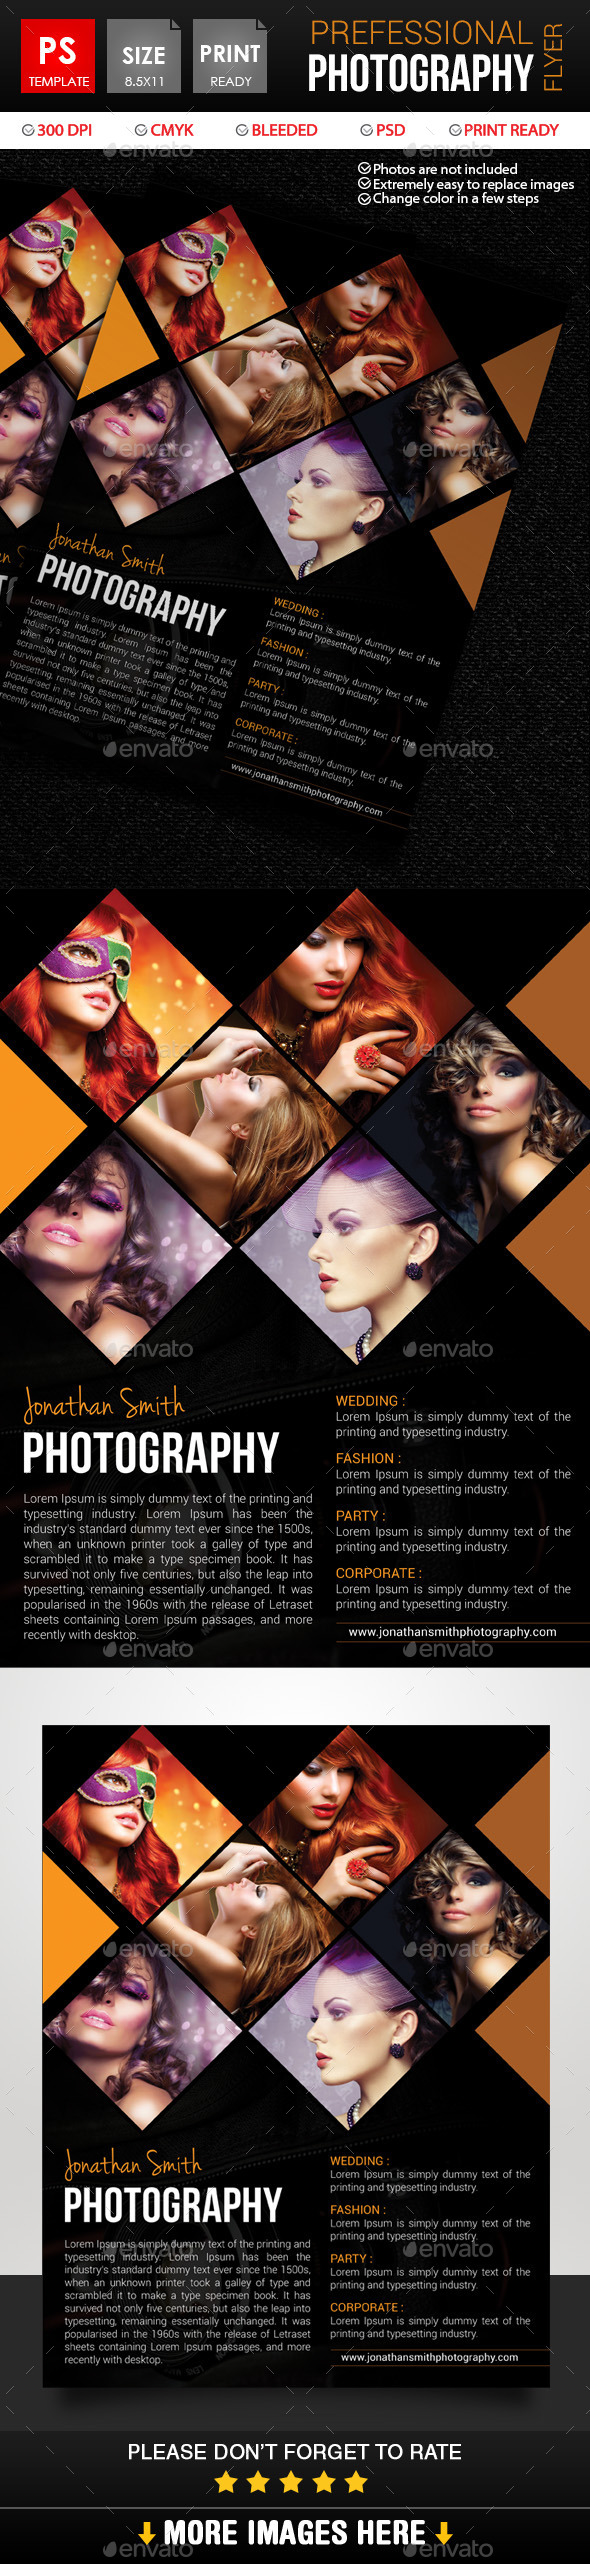 GraphicRiver Photography Flyer 11001324